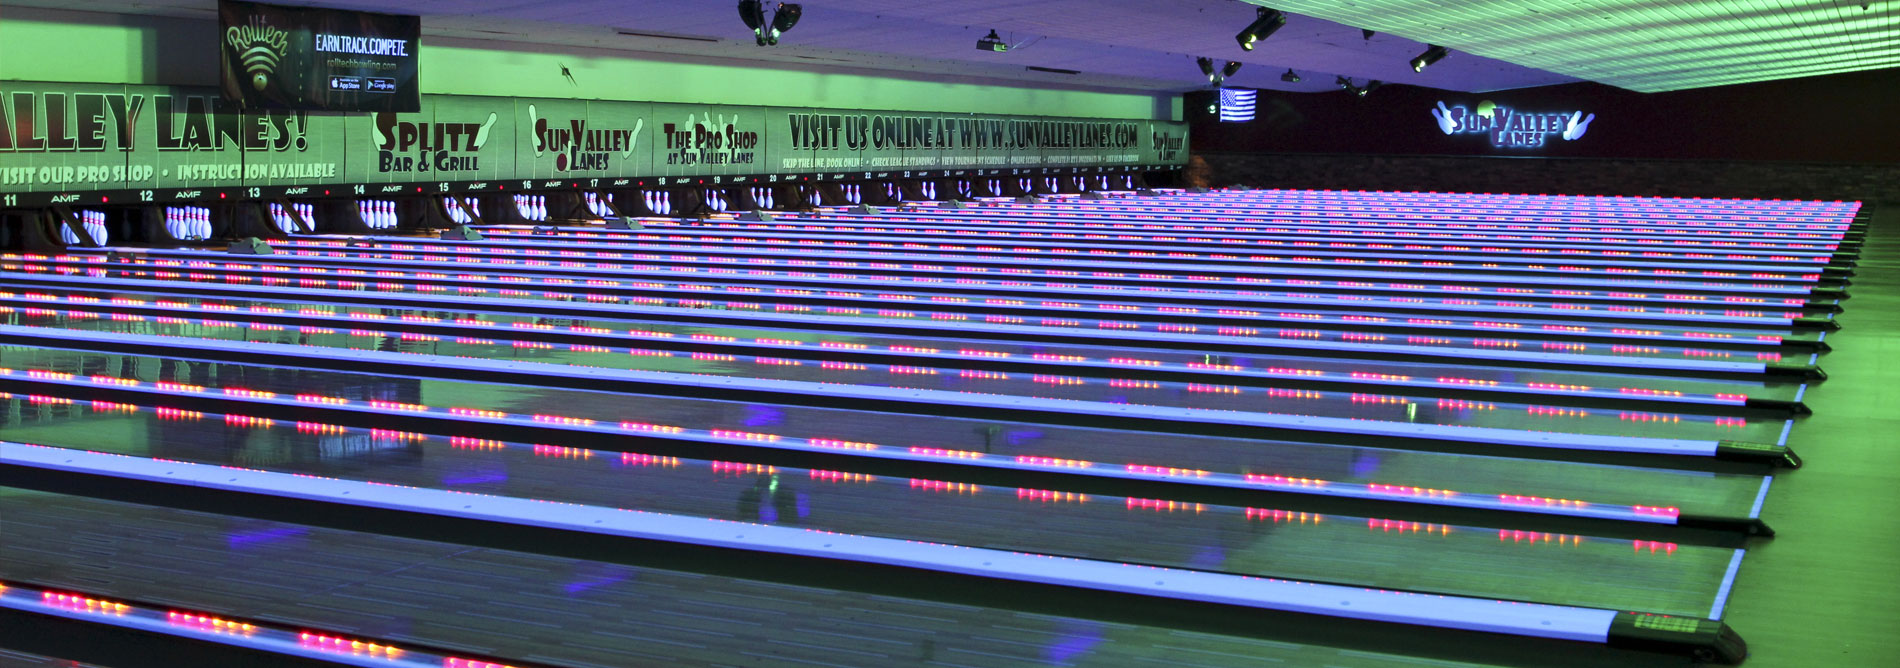 Bowling-QubicaAMF-LANE-ACCESORIES-xtreme-capping-light-banner.jpg